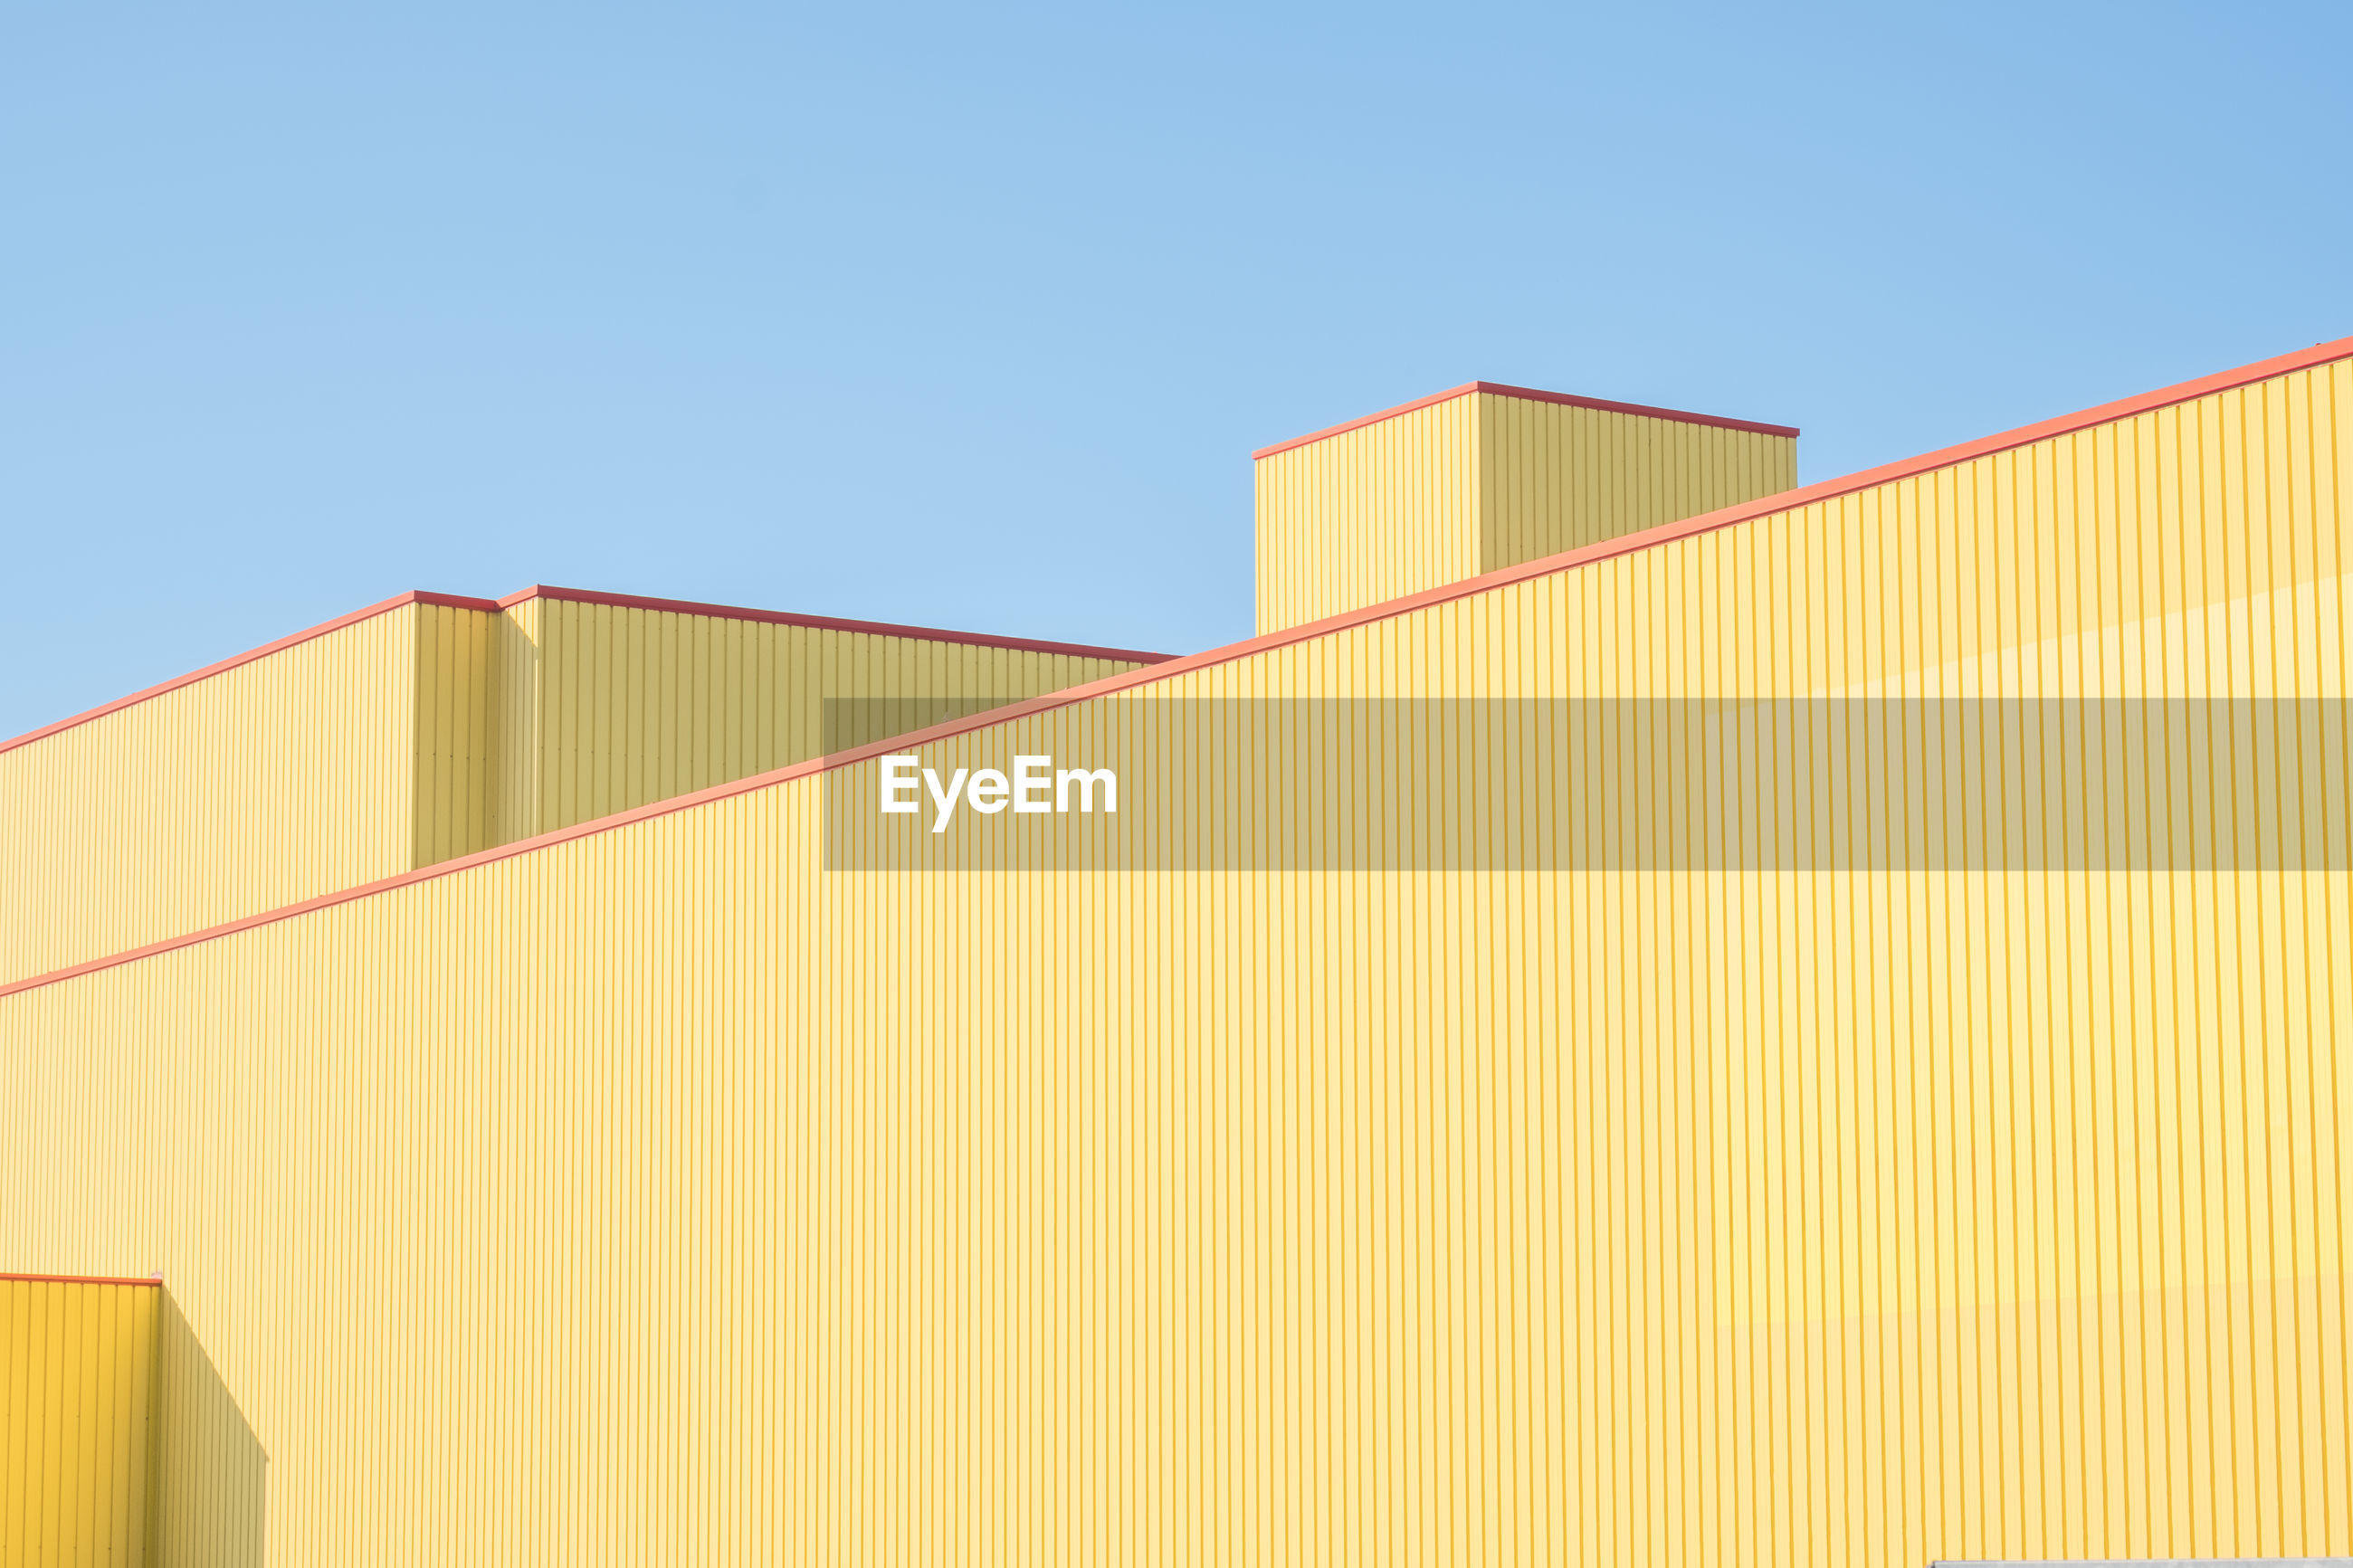 Low angle view of yellow factory building against clear blue sky